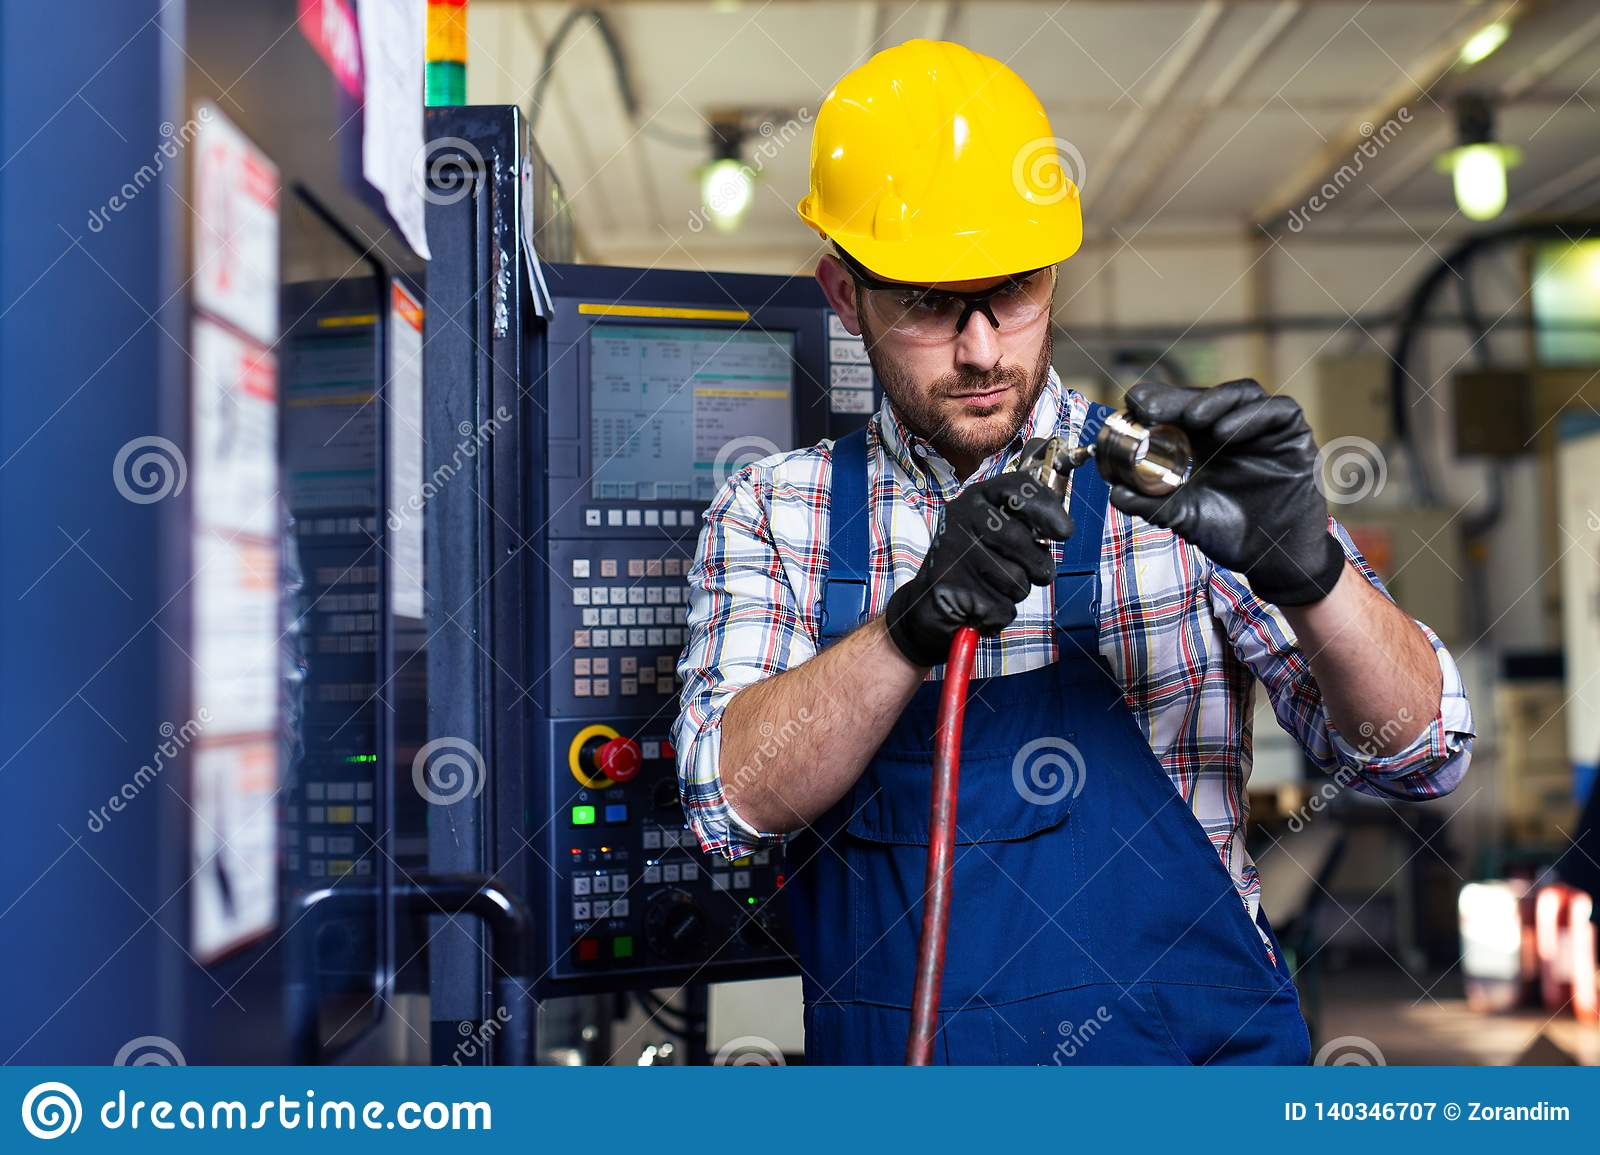 Male Worker And Quality Control Inspection In Factory